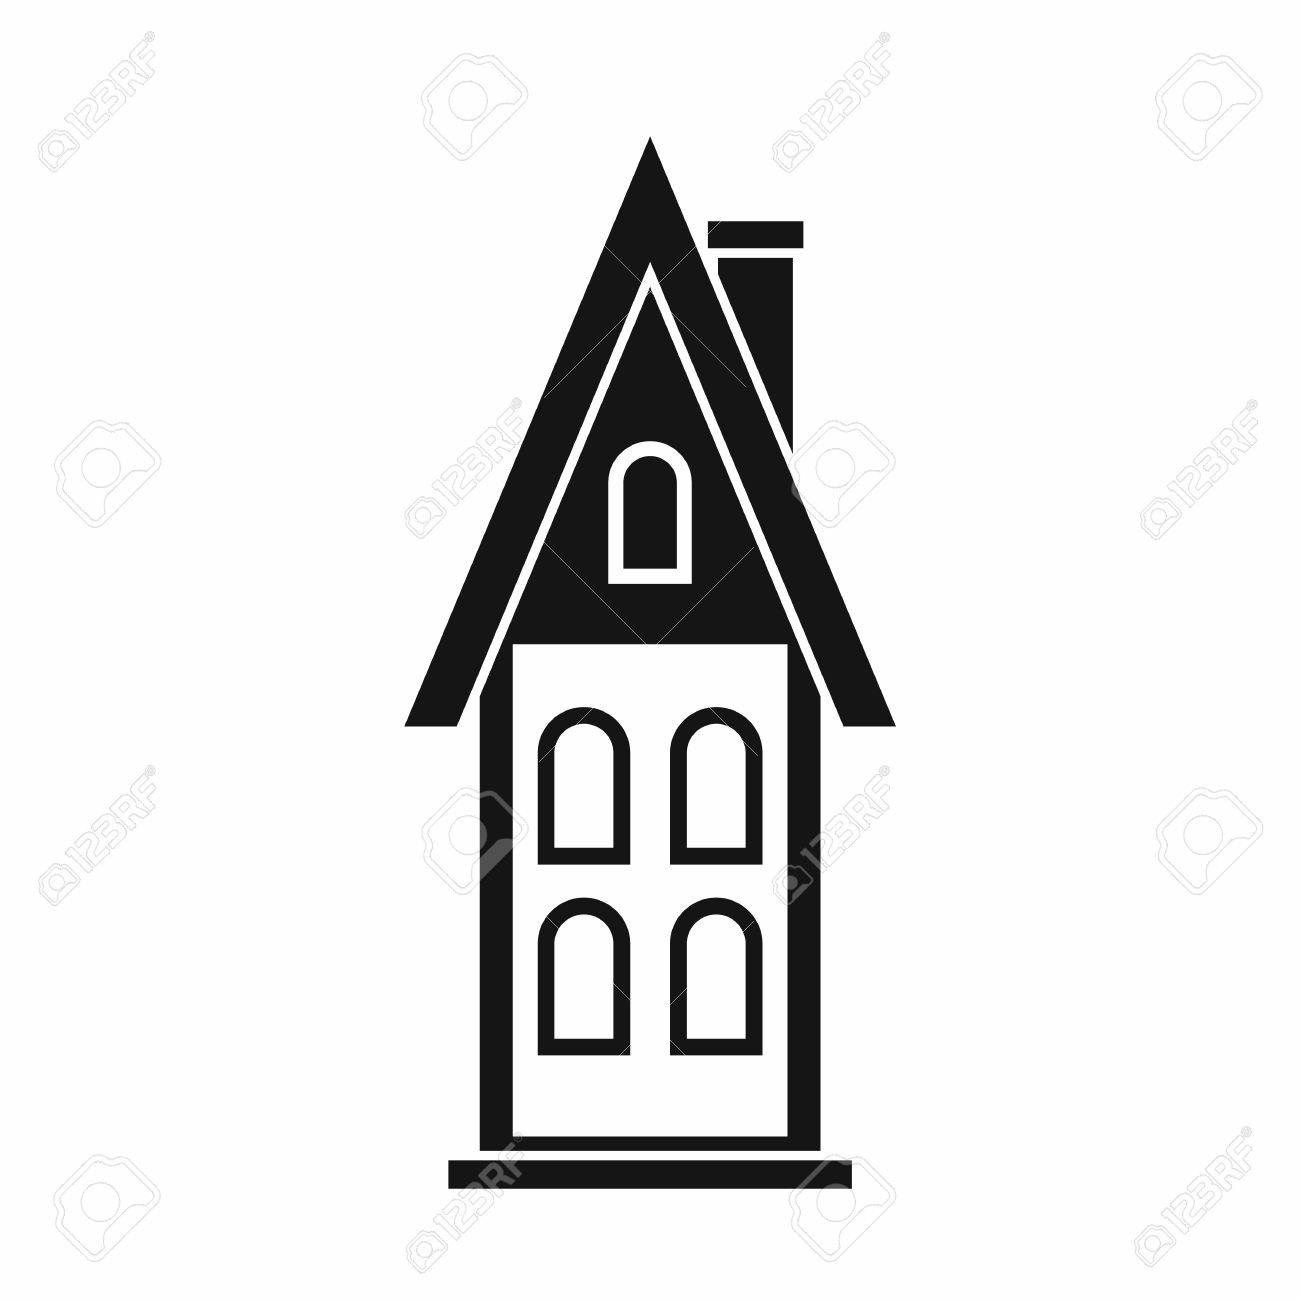 two storey house with attic icon in simple style isolated on